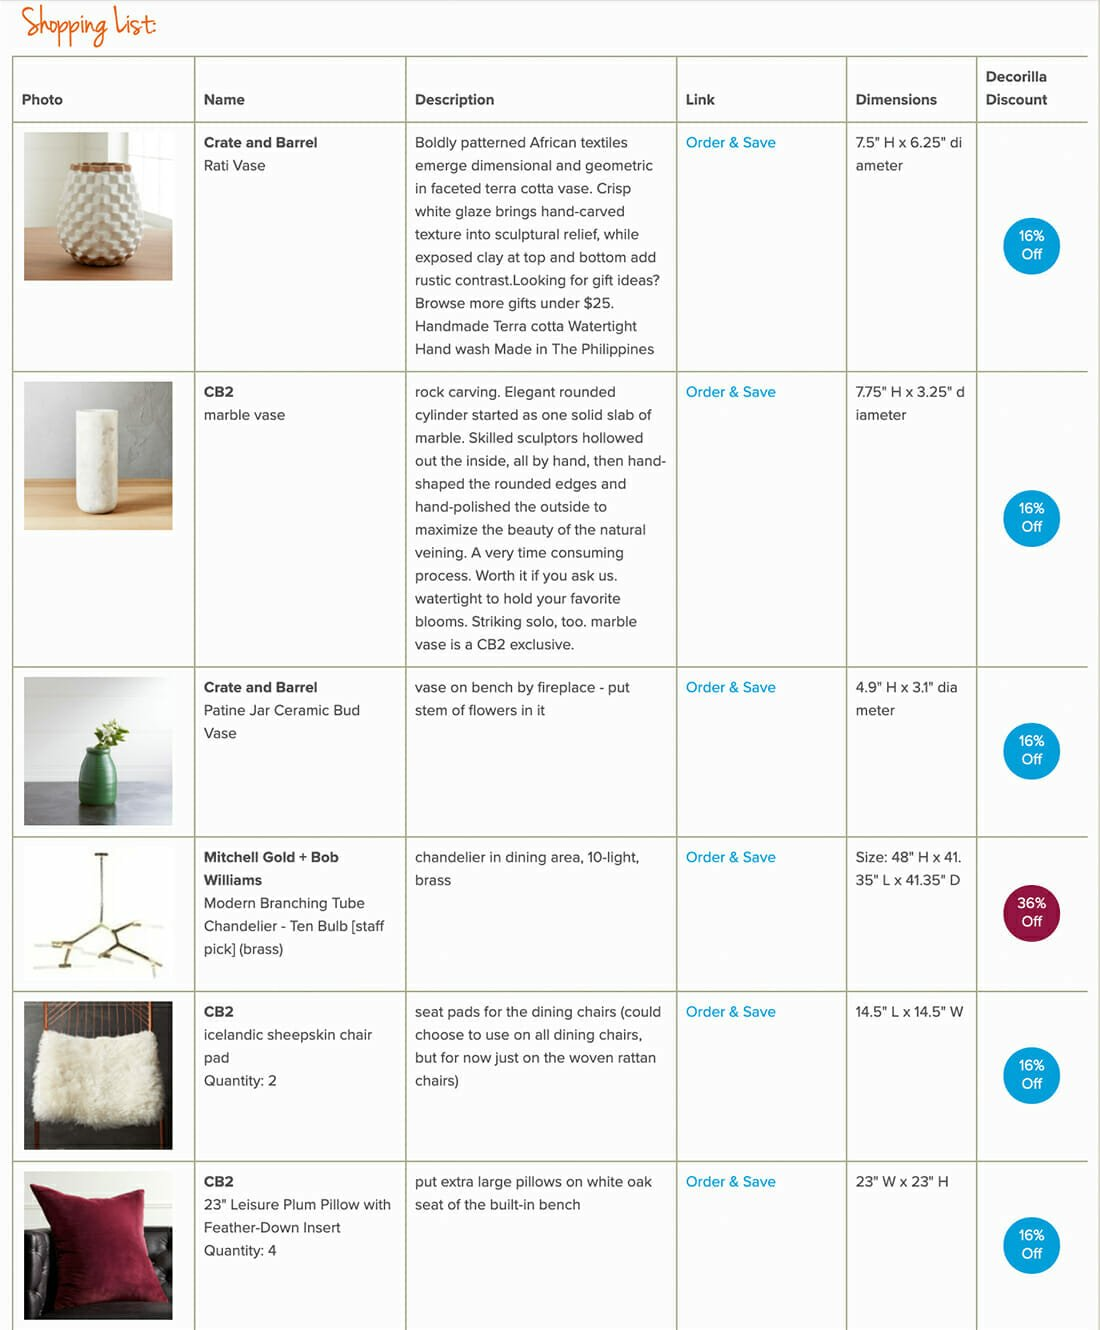 Decorilla Online Shopping List for Modern Rustic Decor